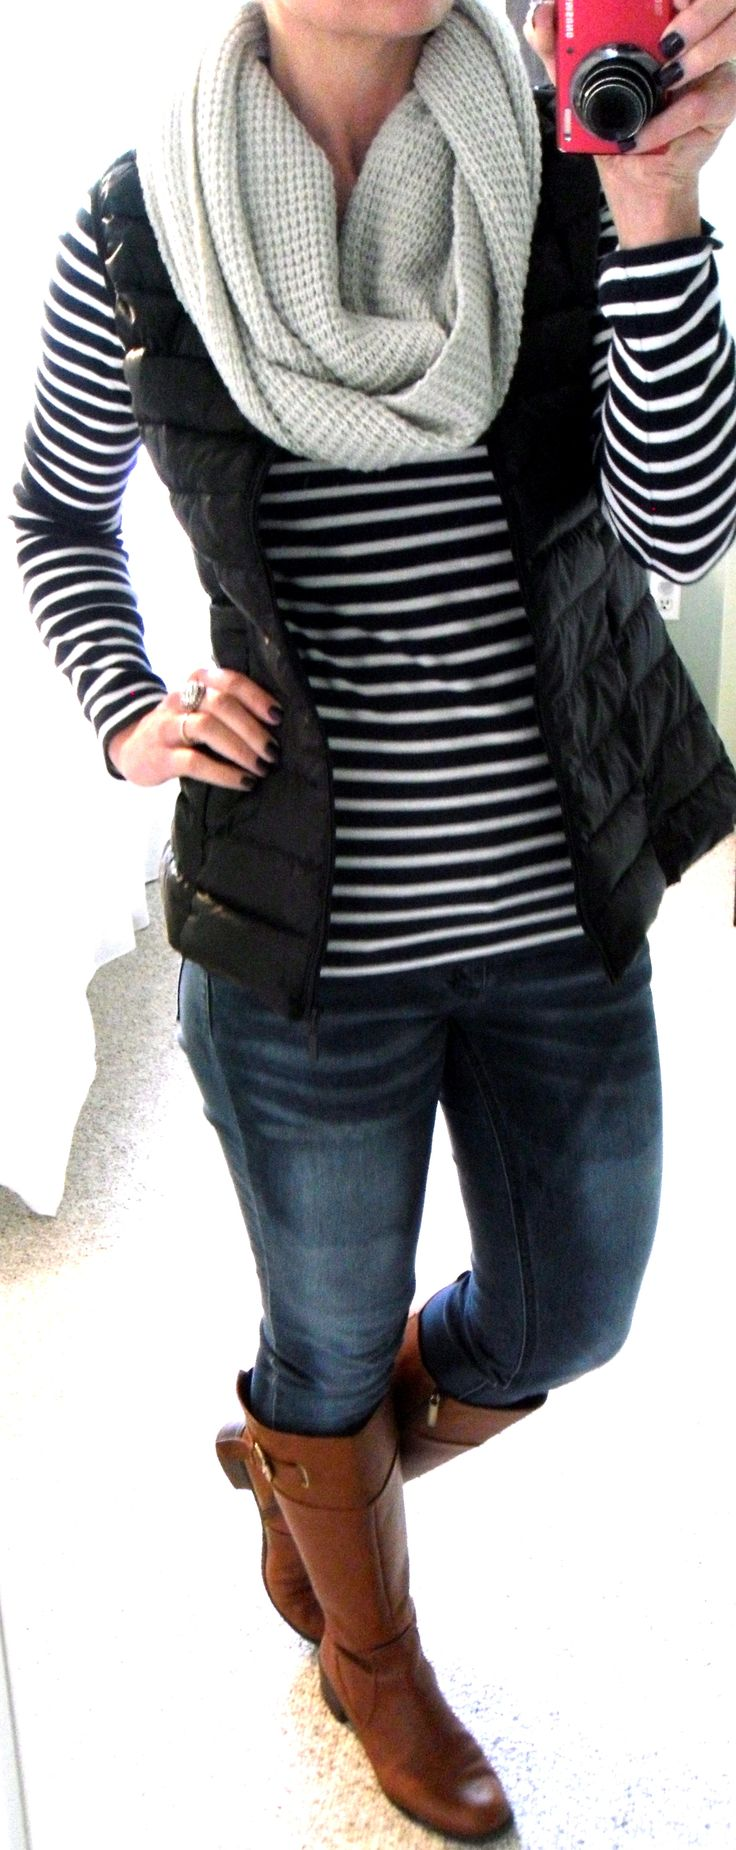 H&M blue and white striped top, BCBG gray knit infinity scarf (from Macy's), H&M black down puffer vest, distressed skinny jeans, Bandolino cognac boots